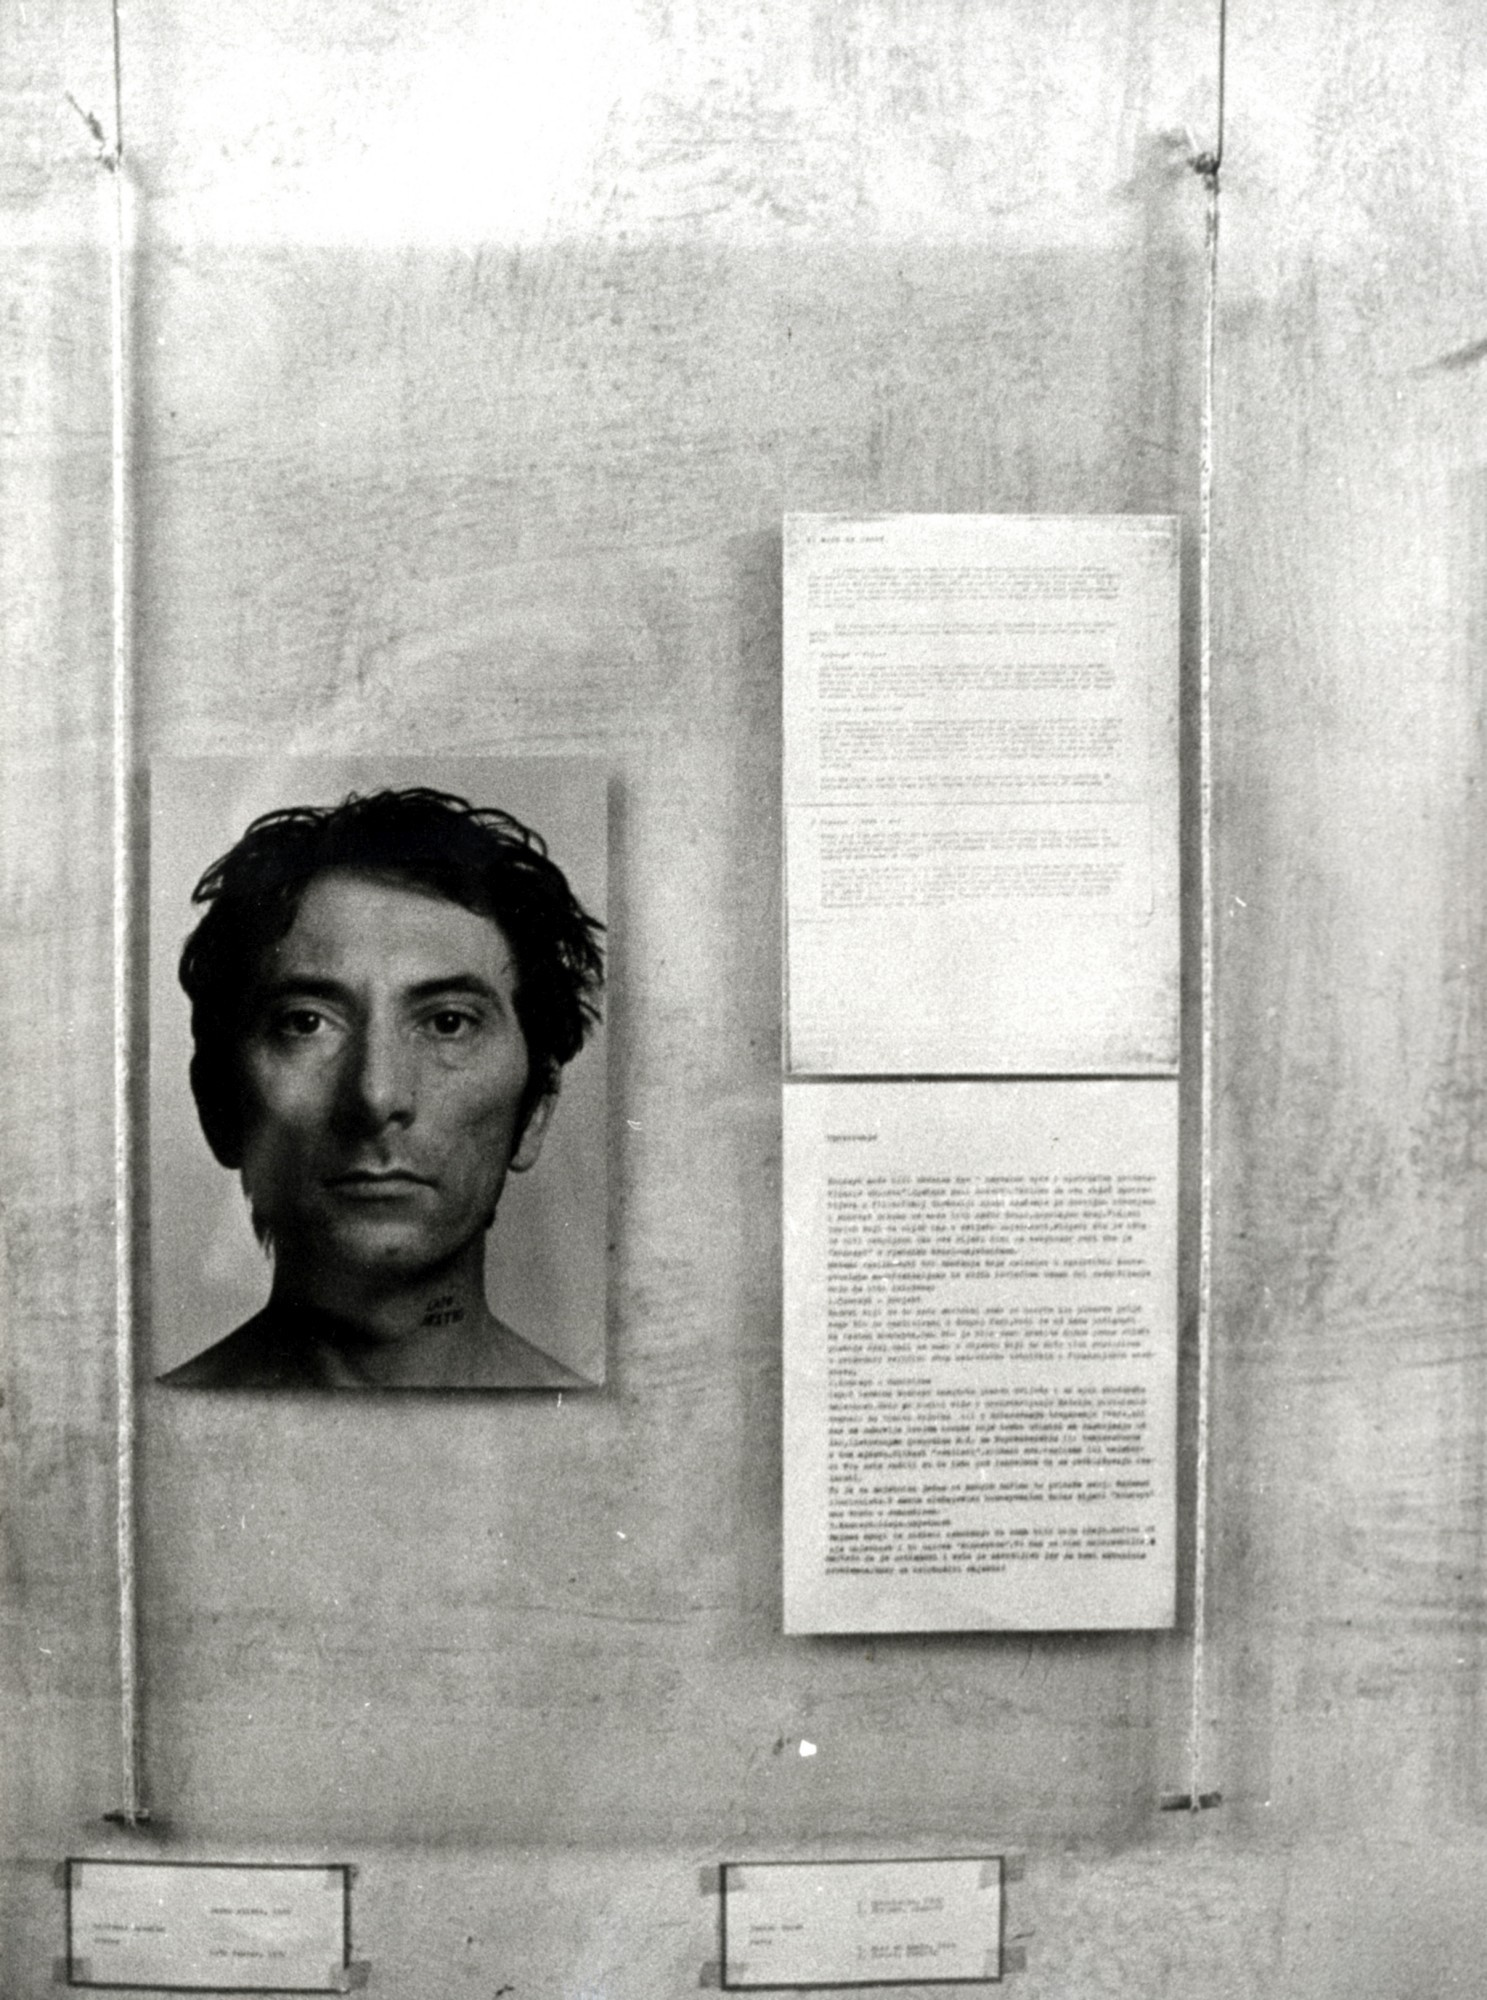 At the Moment Exhibition, Haustor, 1971, installation view with Giovanni Anselmo's work, photo-documentation, Marinko Sudac Collection